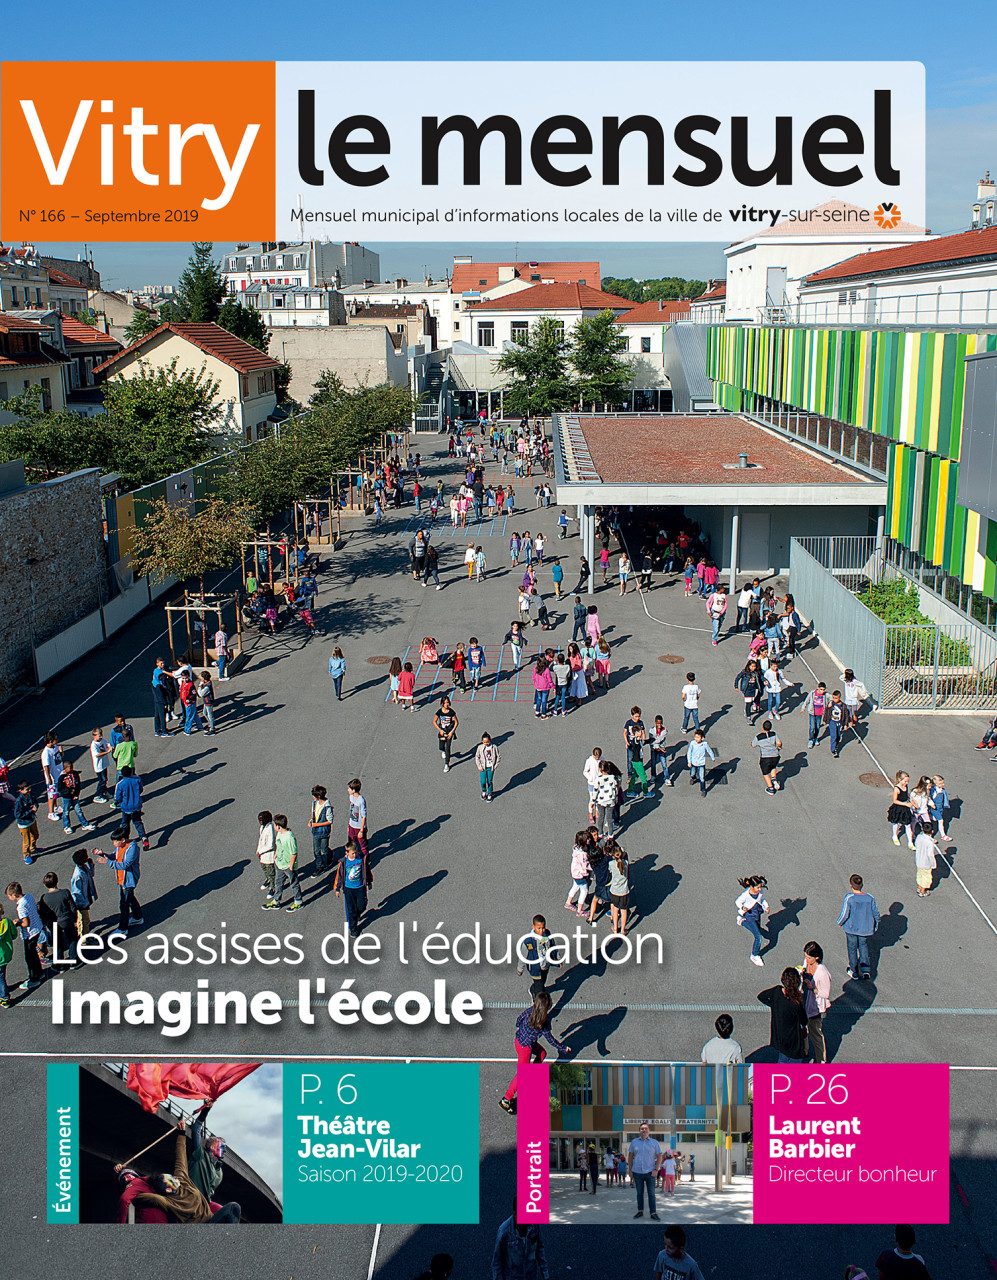 Parution en Une de Vitry Le Mensuel de septembre 2019 : Photo © Nicolas Wietrich